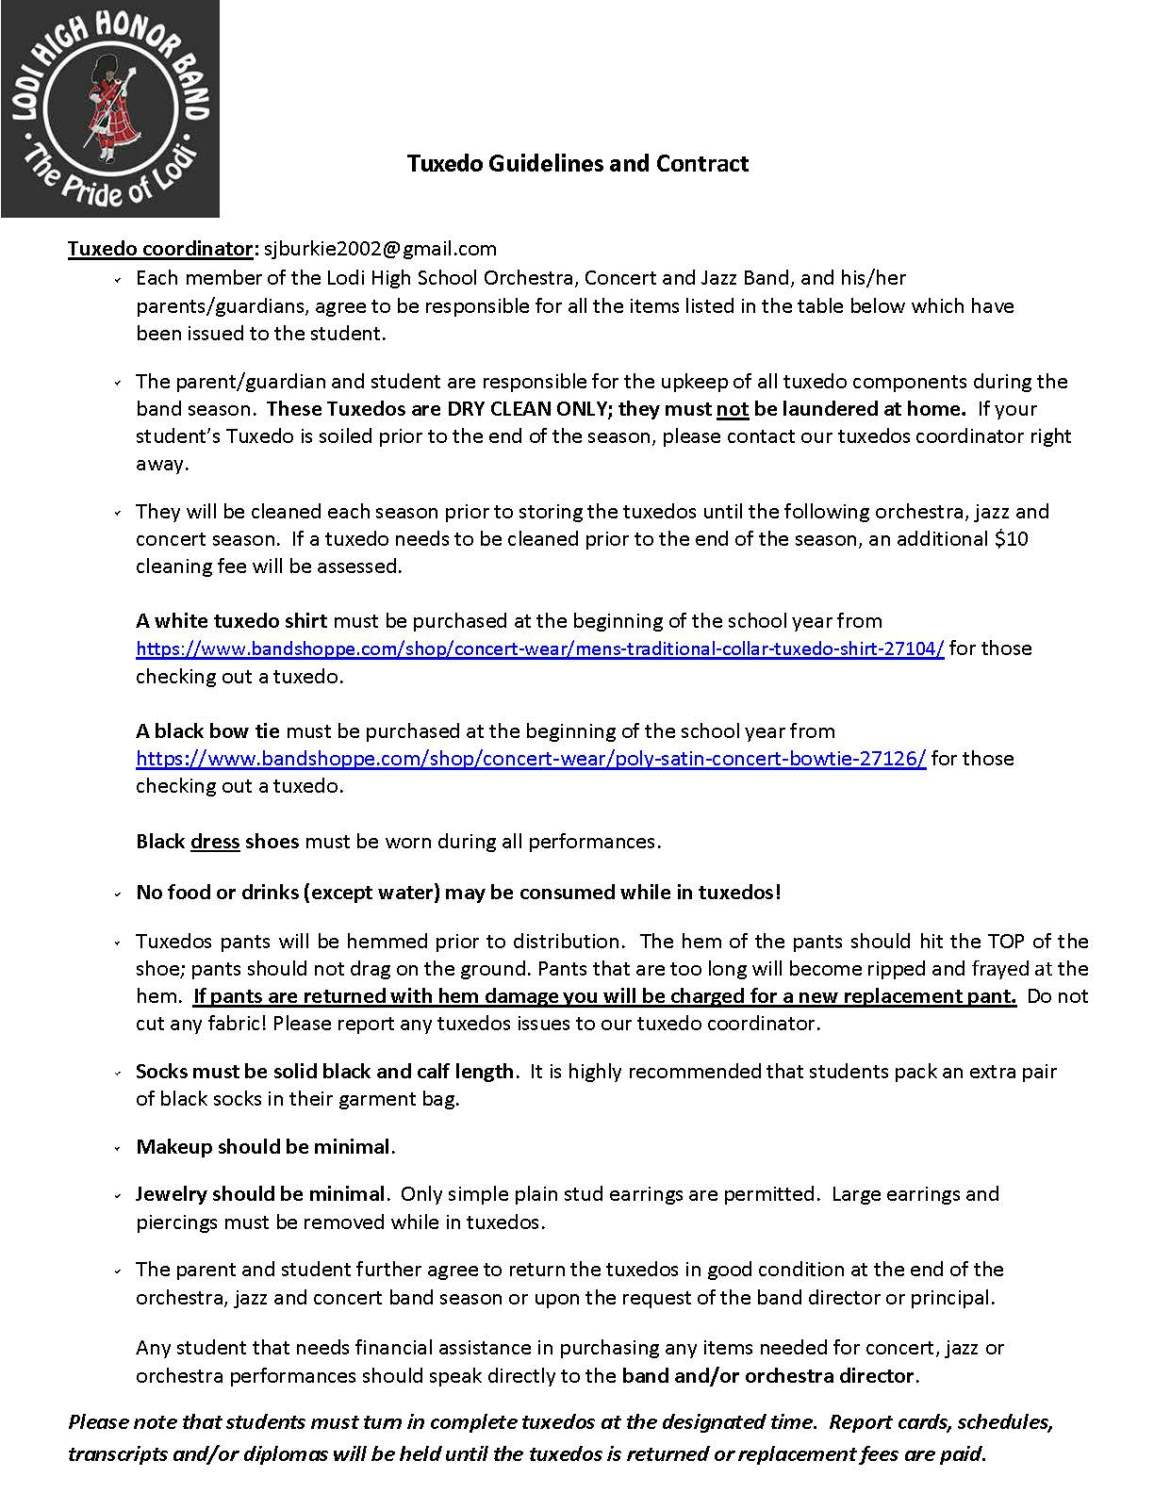 2019-Tuxedo-Contract_Page_1